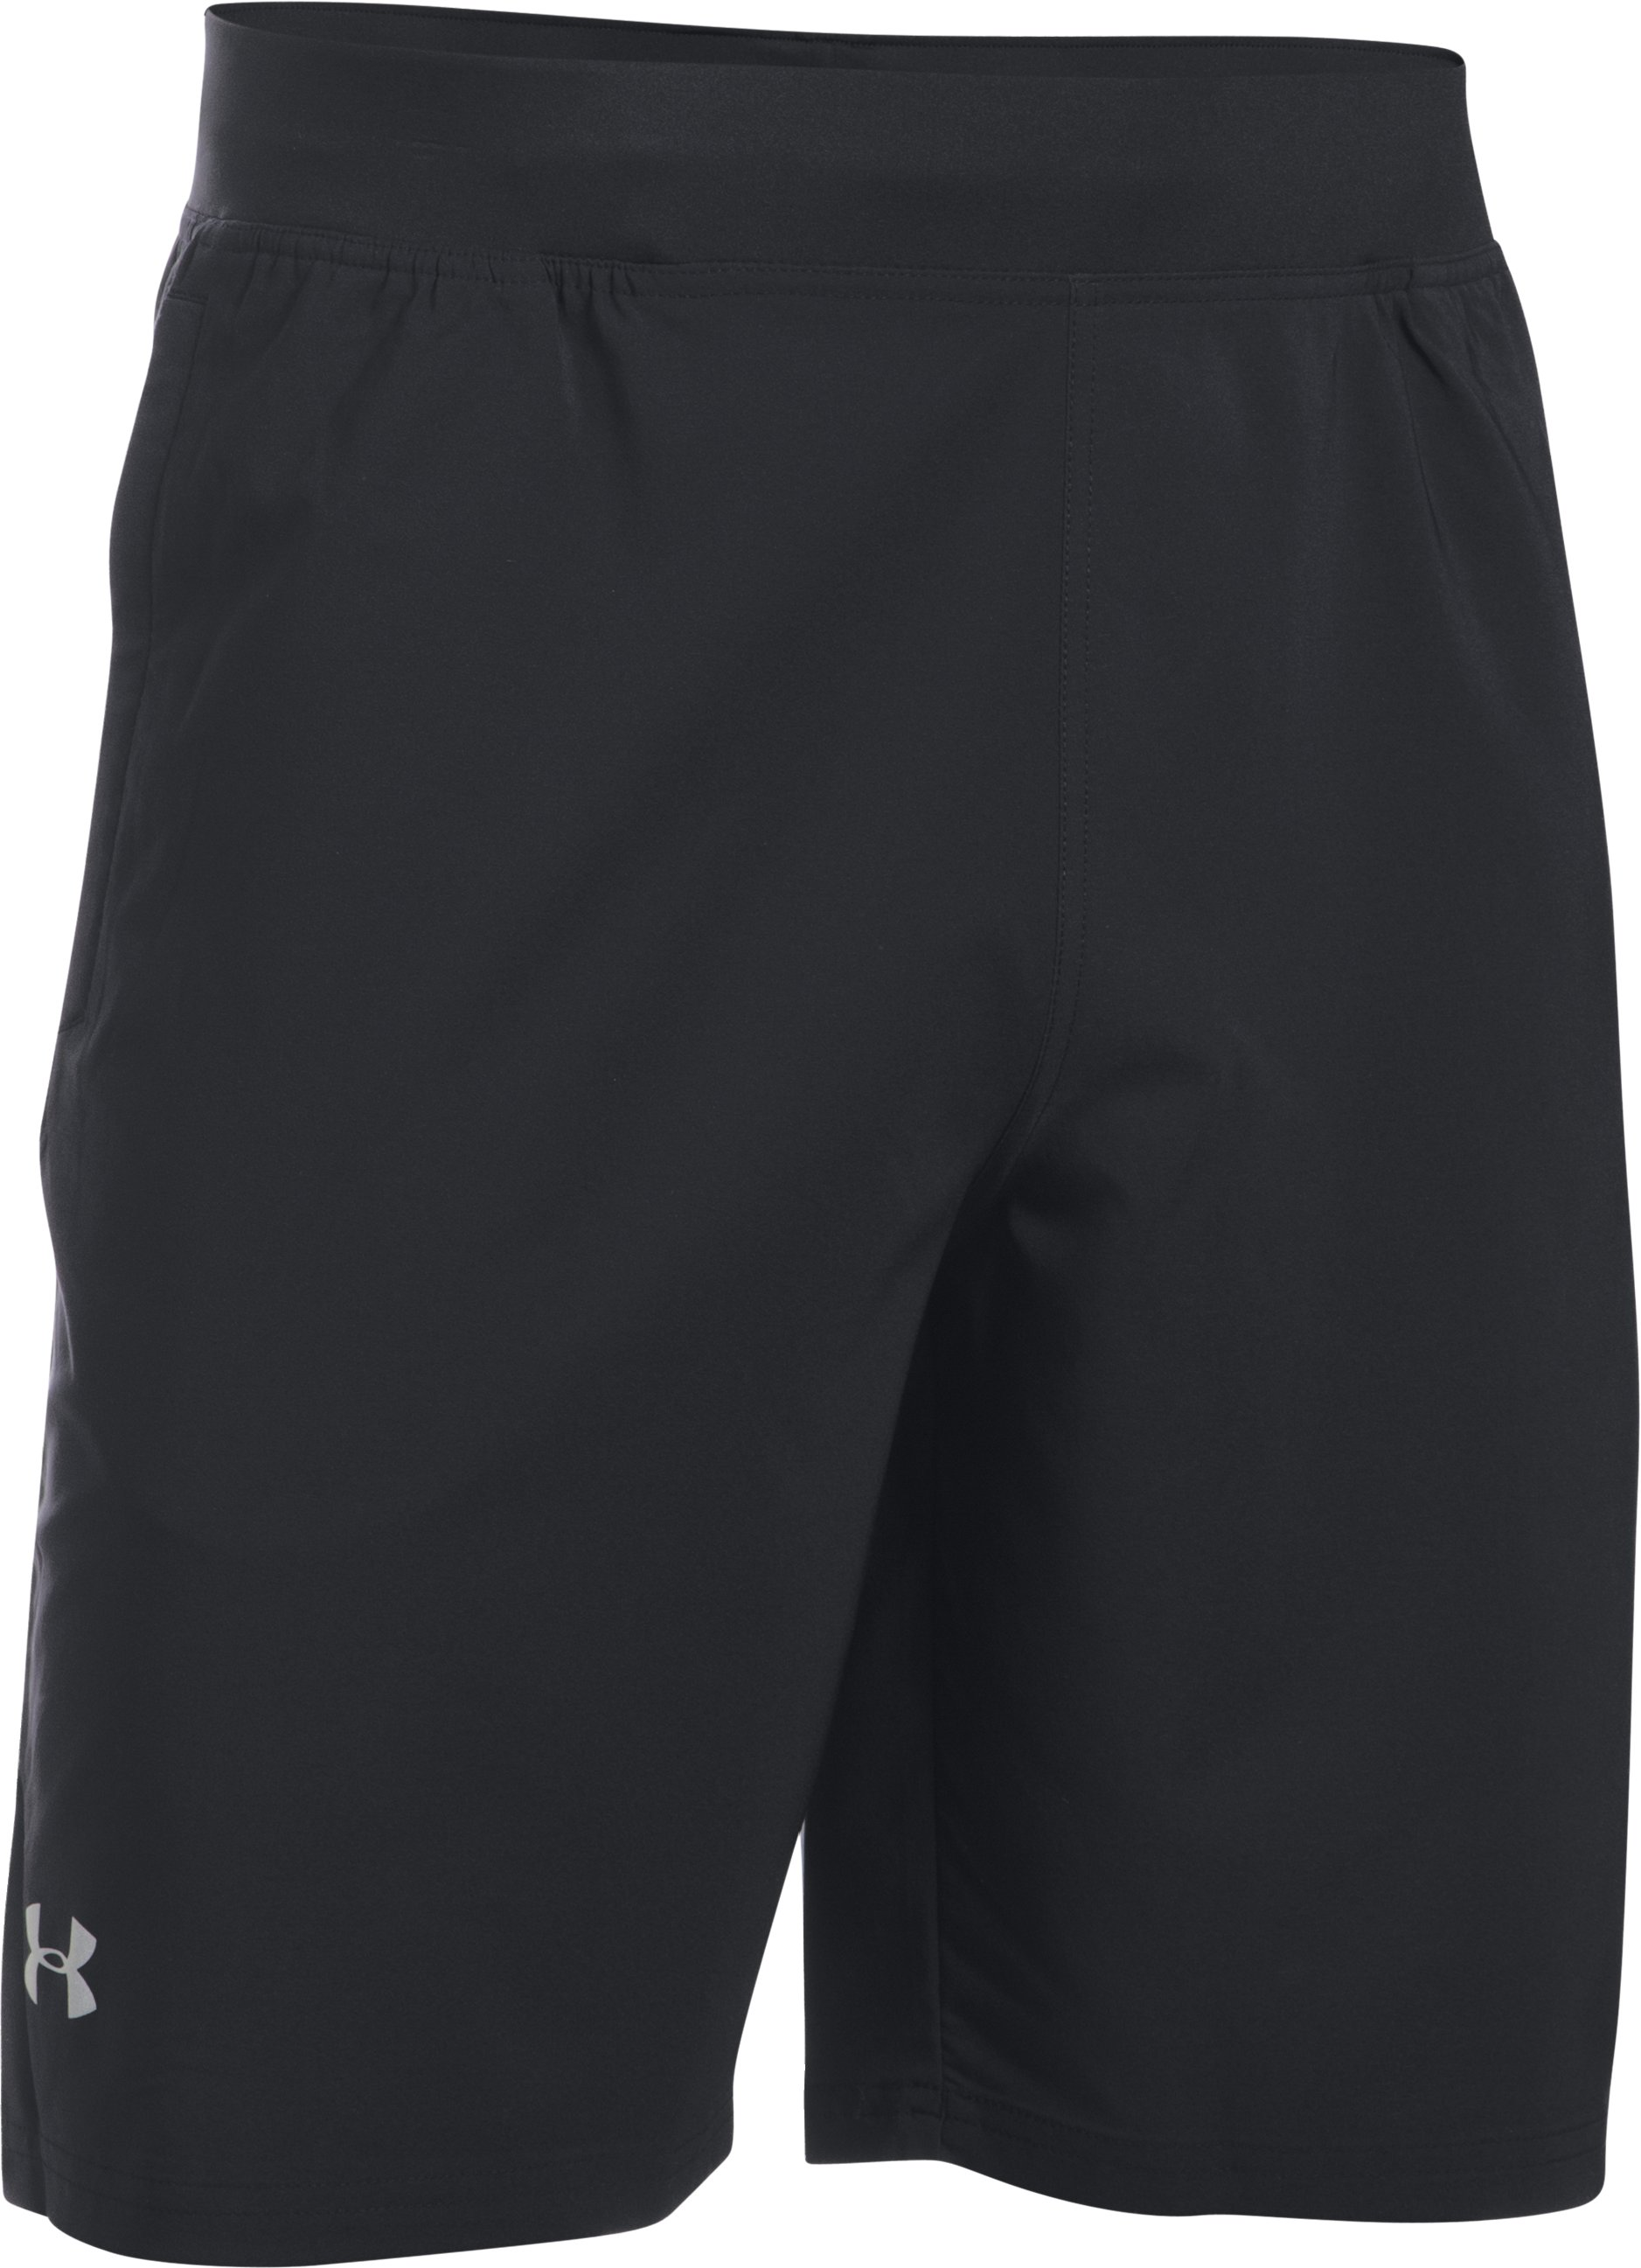 "Men's UA Speedpocket Run 9"" Shorts, Black ,"